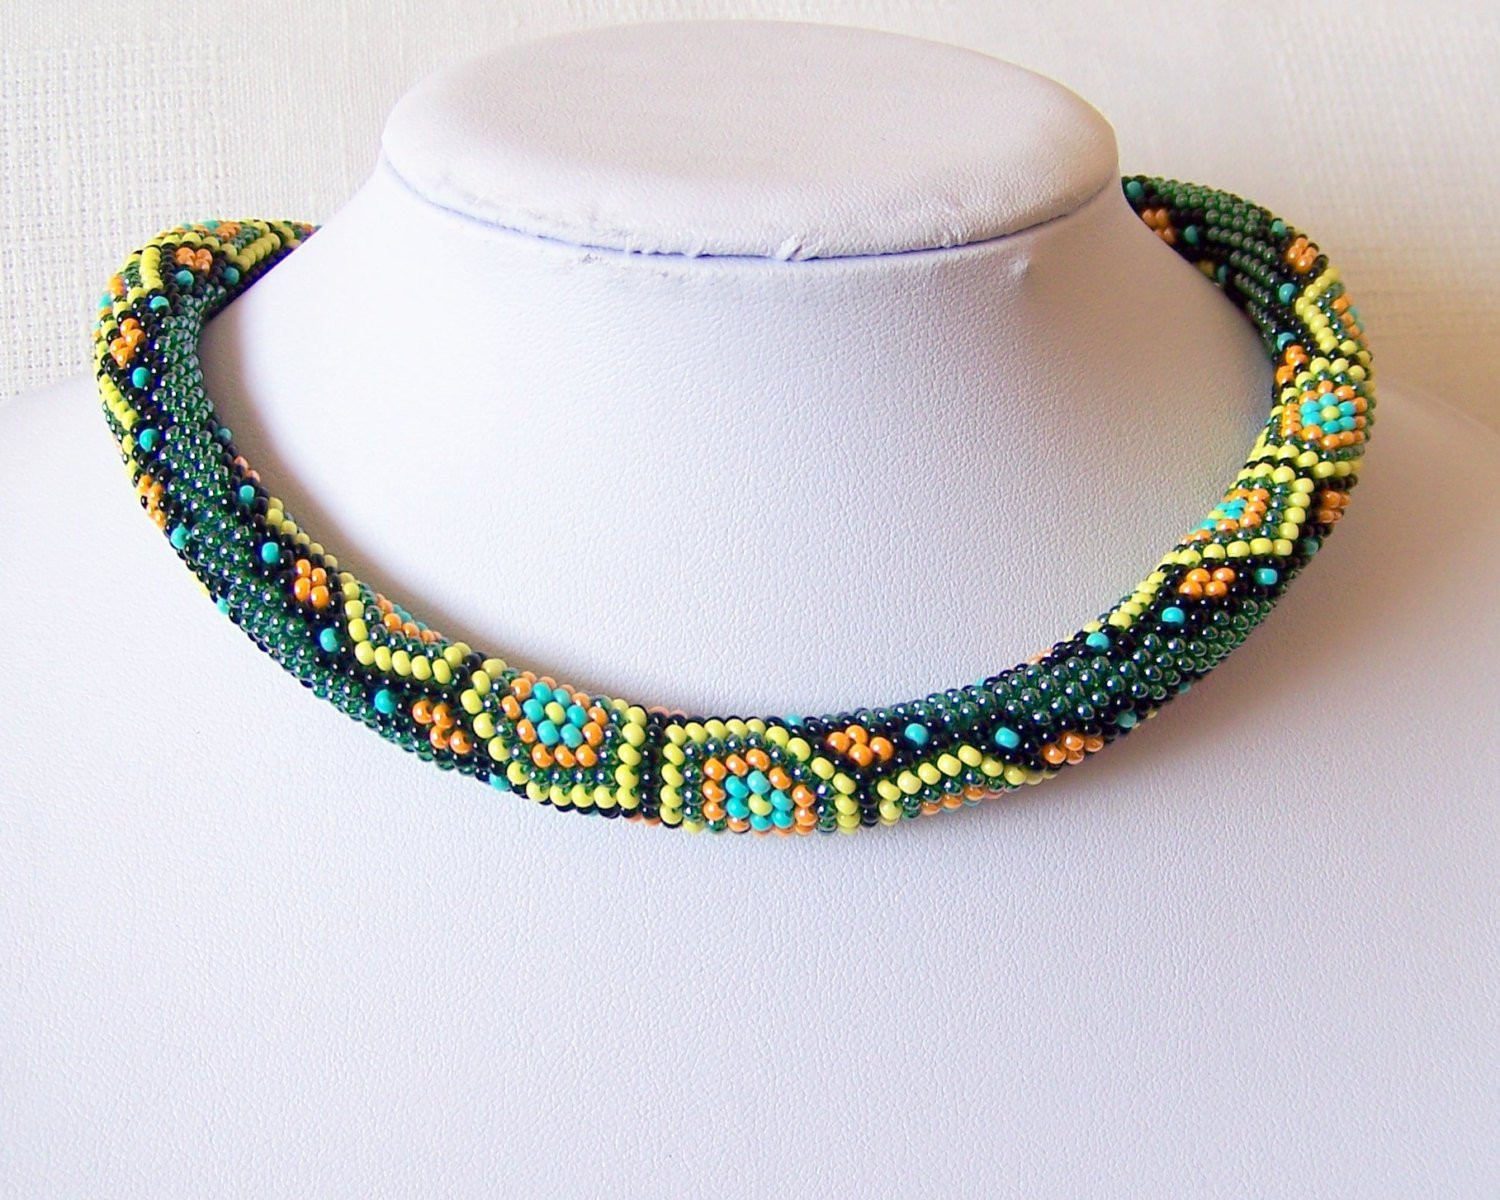 Crochet Beaded Necklace Best Of Bead Crochet Necklace with Geometric Pattern Beaded Rope Of Contemporary 43 Images Crochet Beaded Necklace